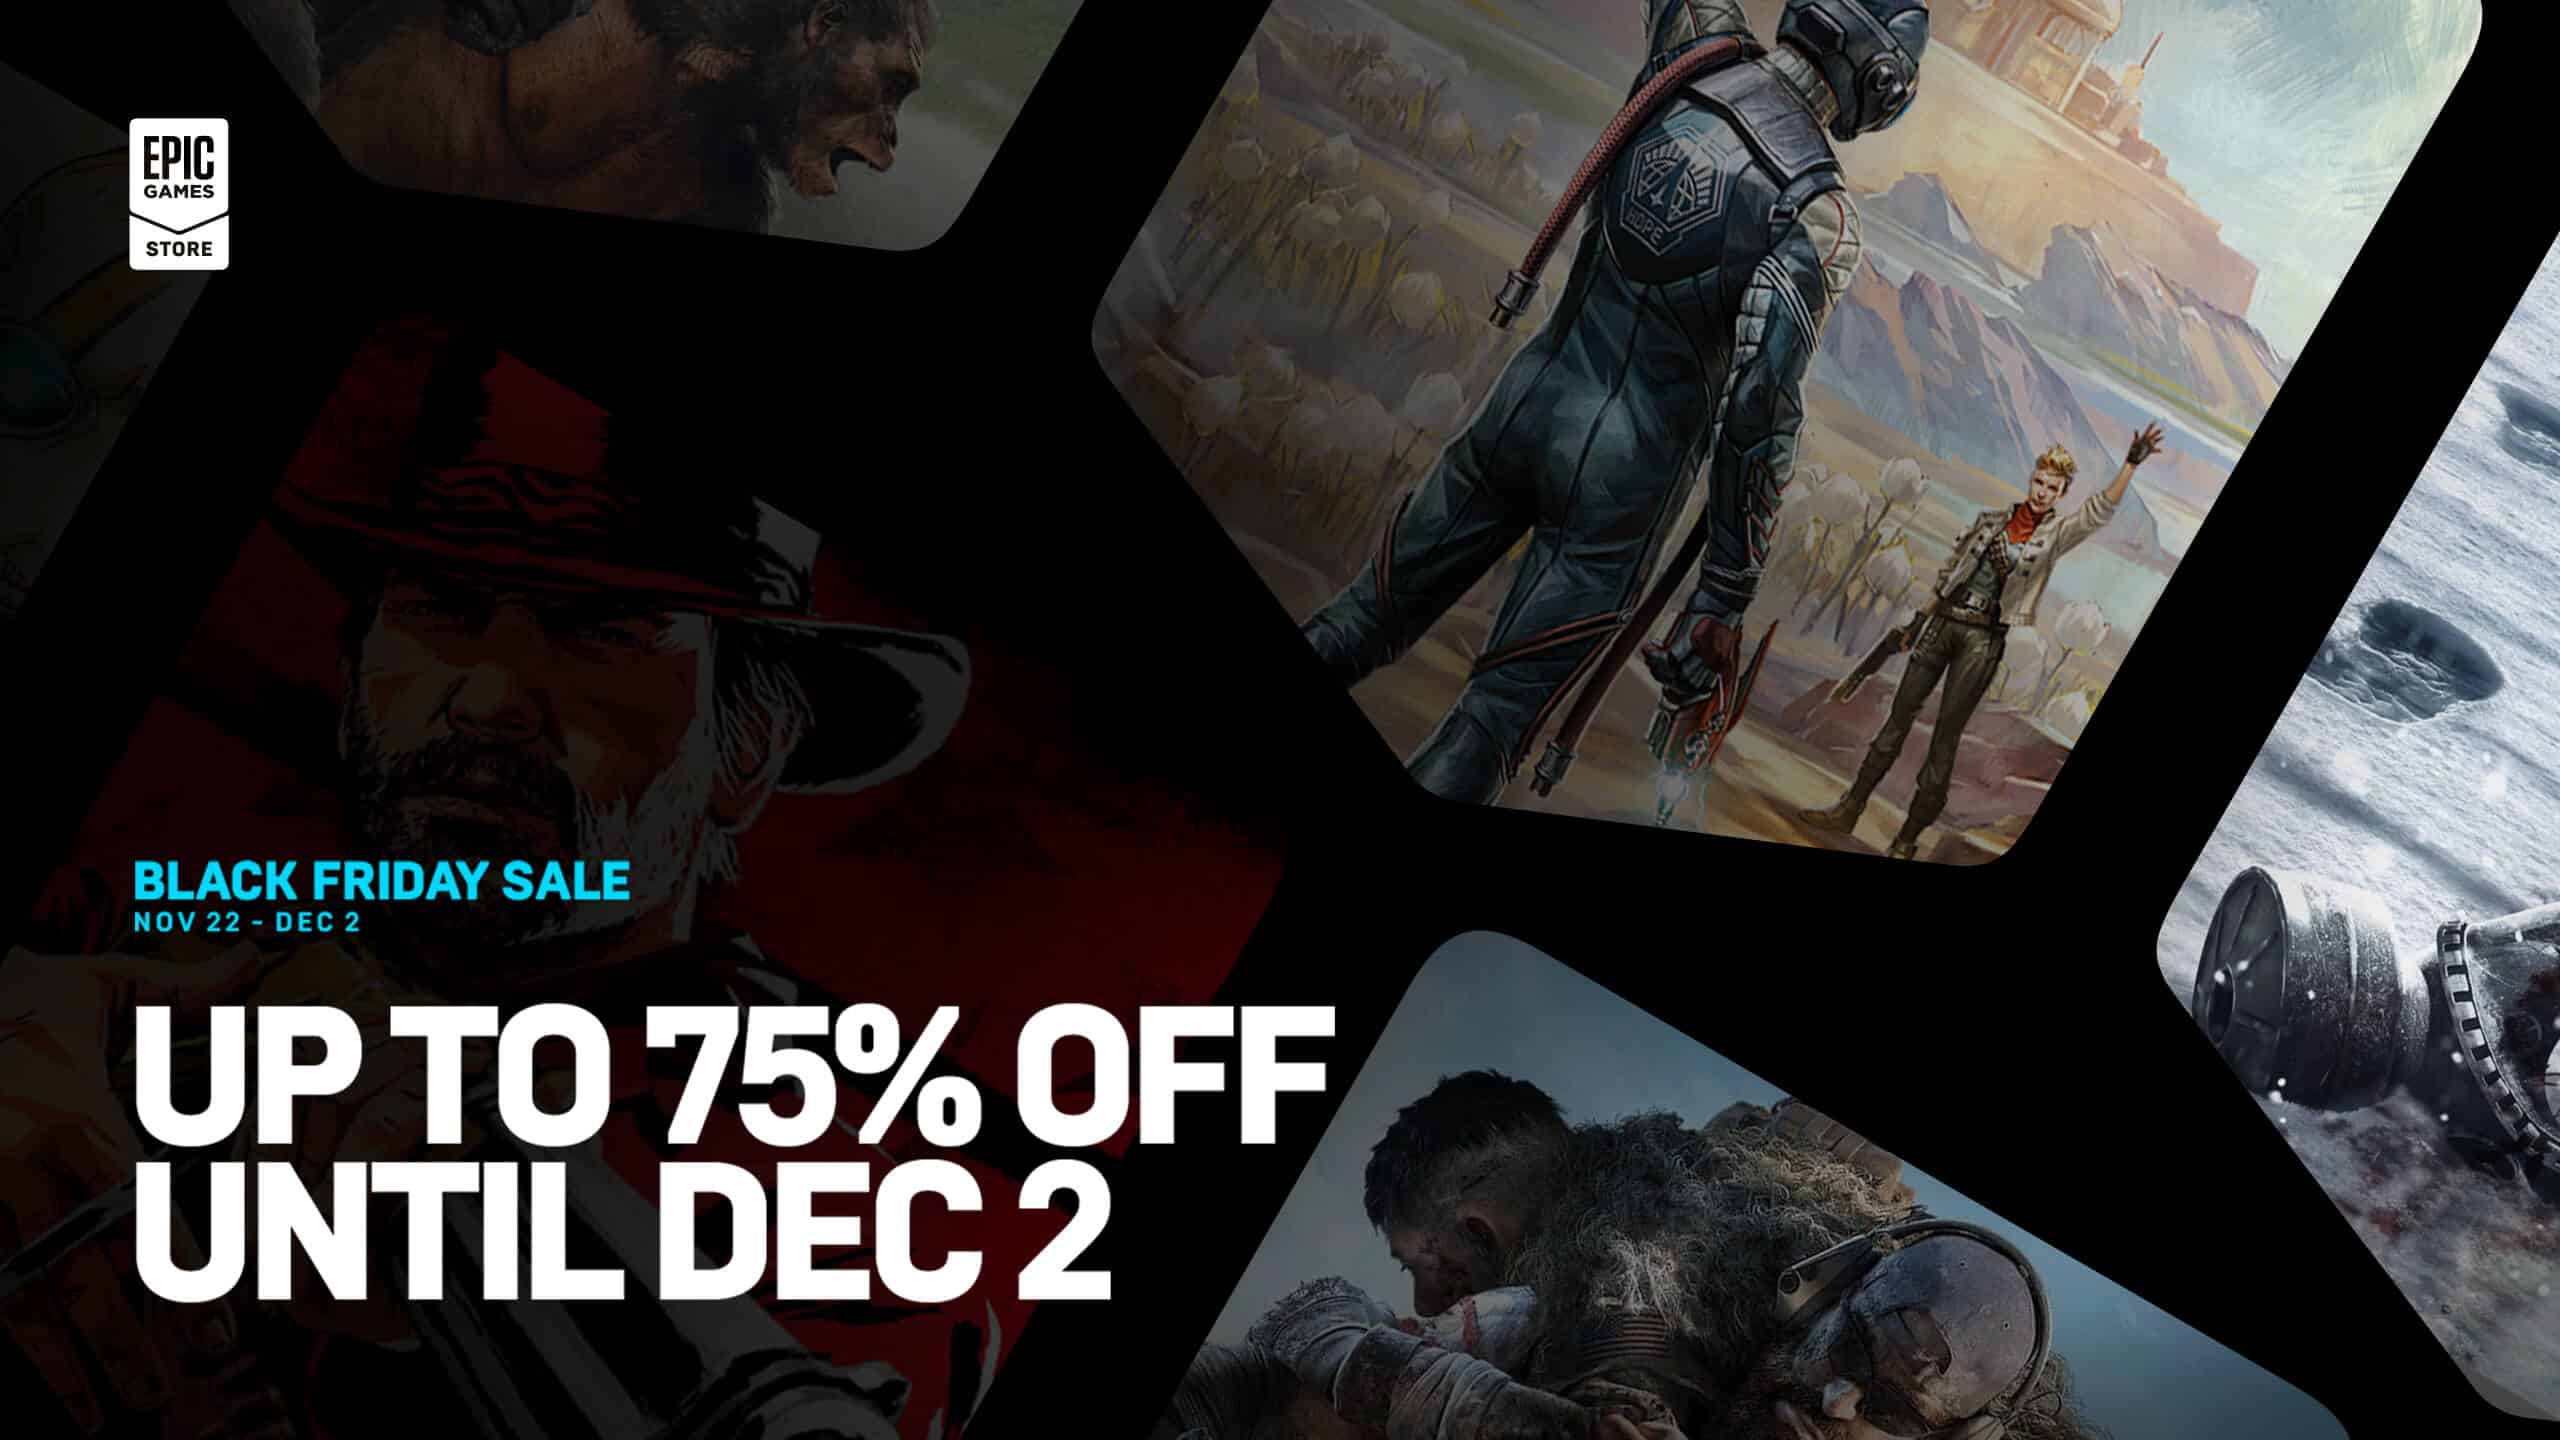 Epic Games Store Black Friday 2019 sale deals